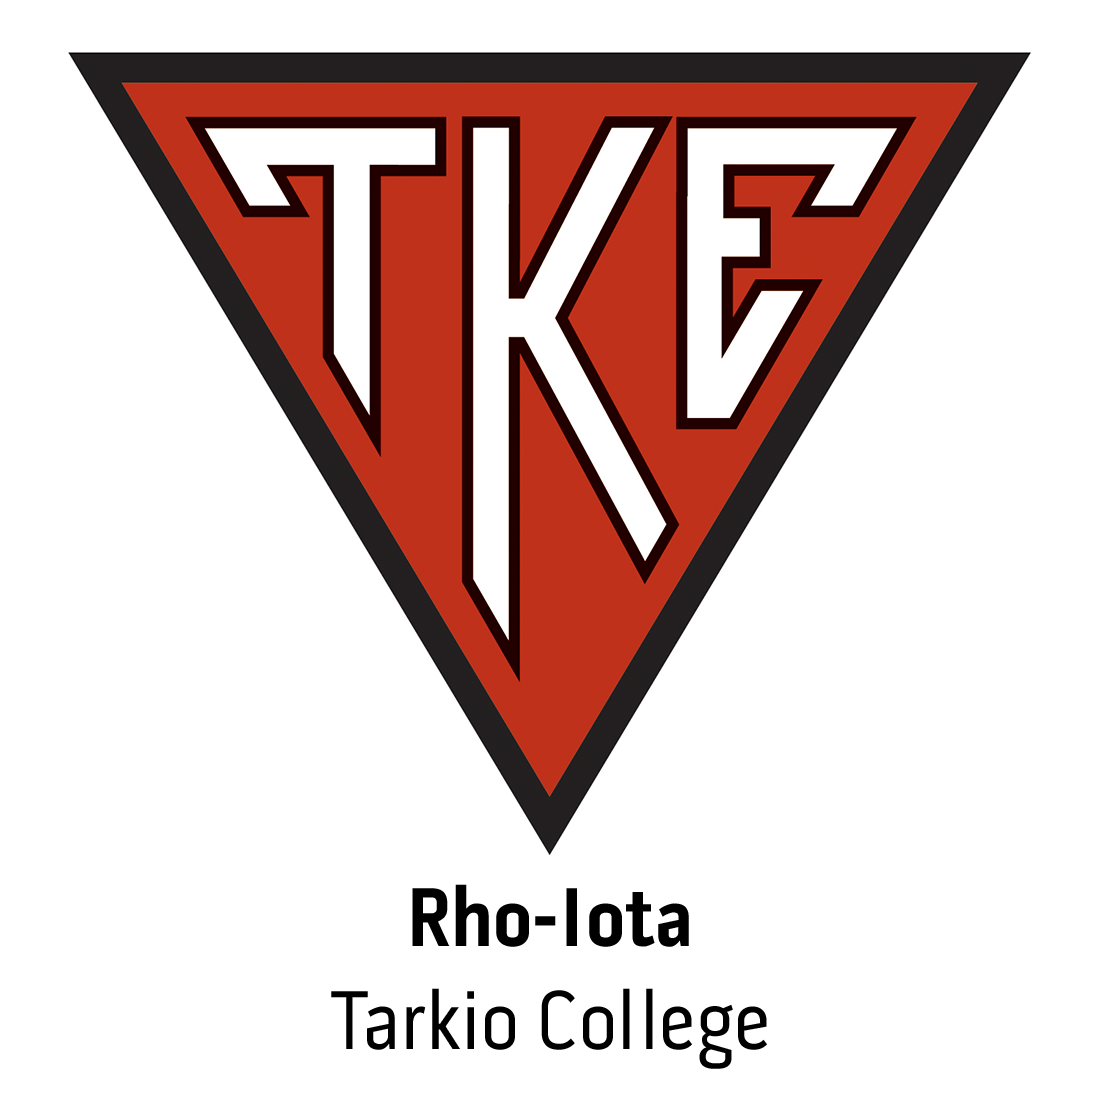 Rho-Iota Chapter at Tarkio College